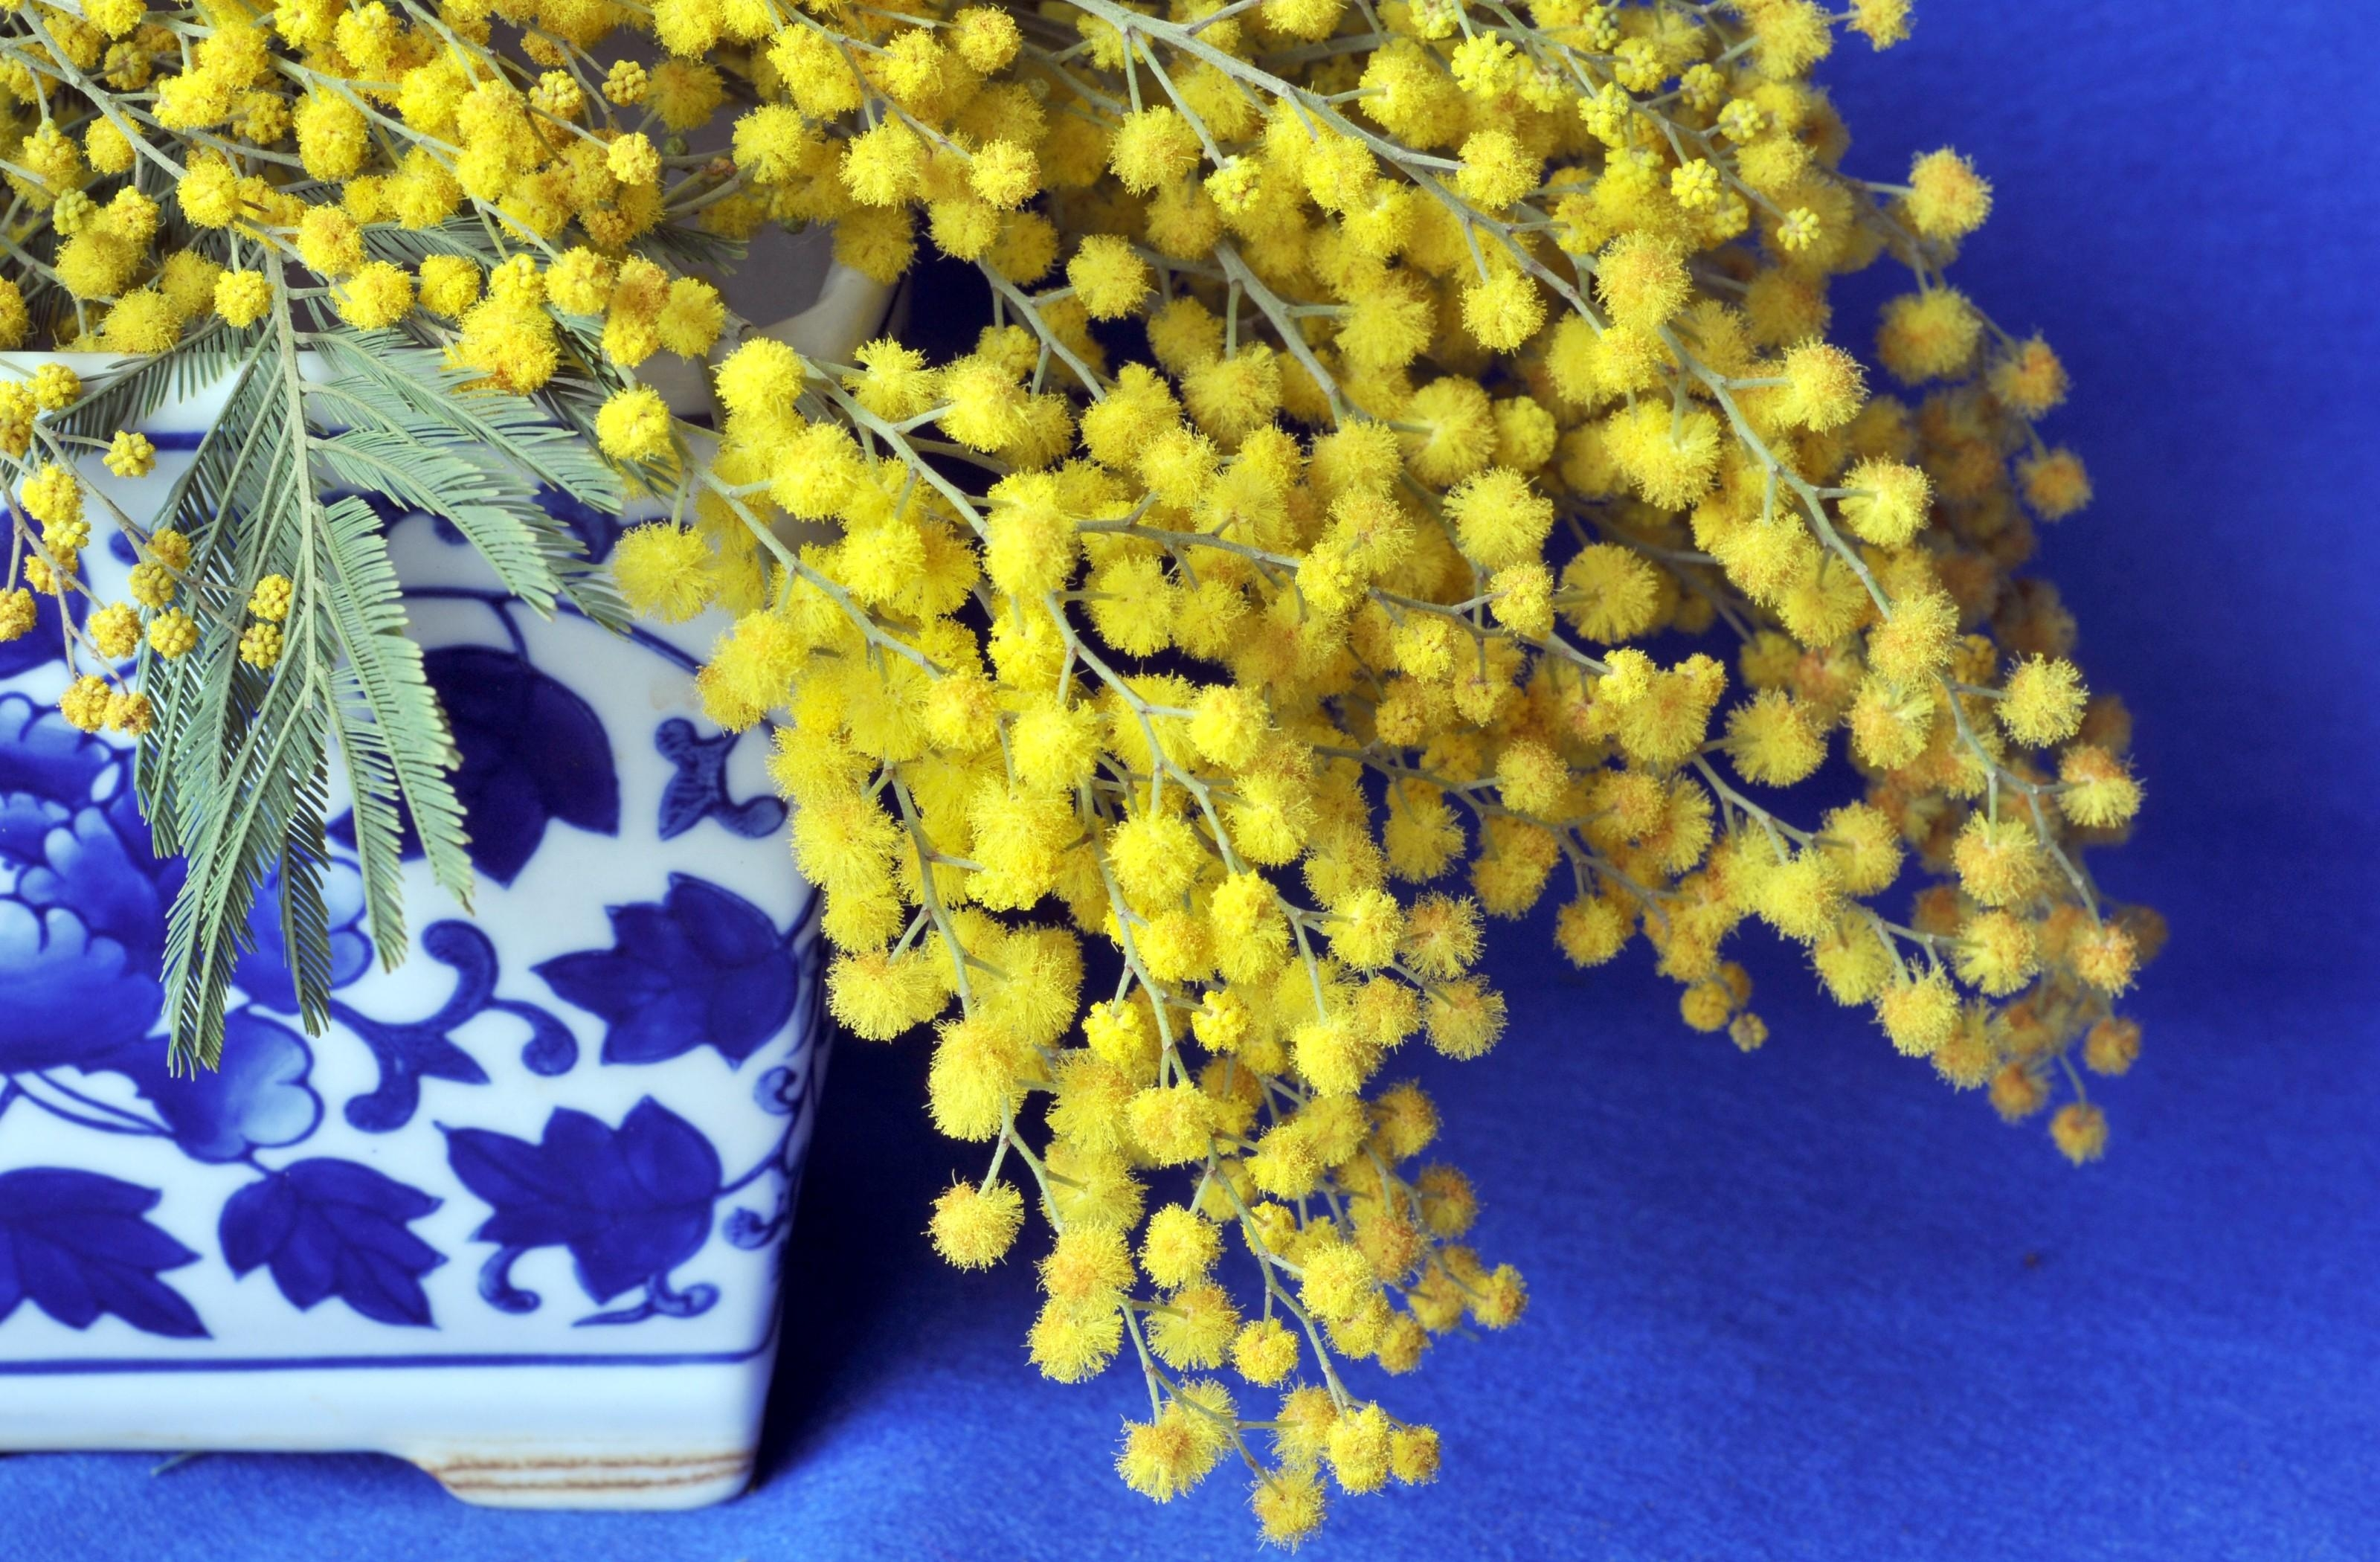 146786 download wallpaper Flowers, Mimosa, Branch, Fluffy, Porcelain screensavers and pictures for free